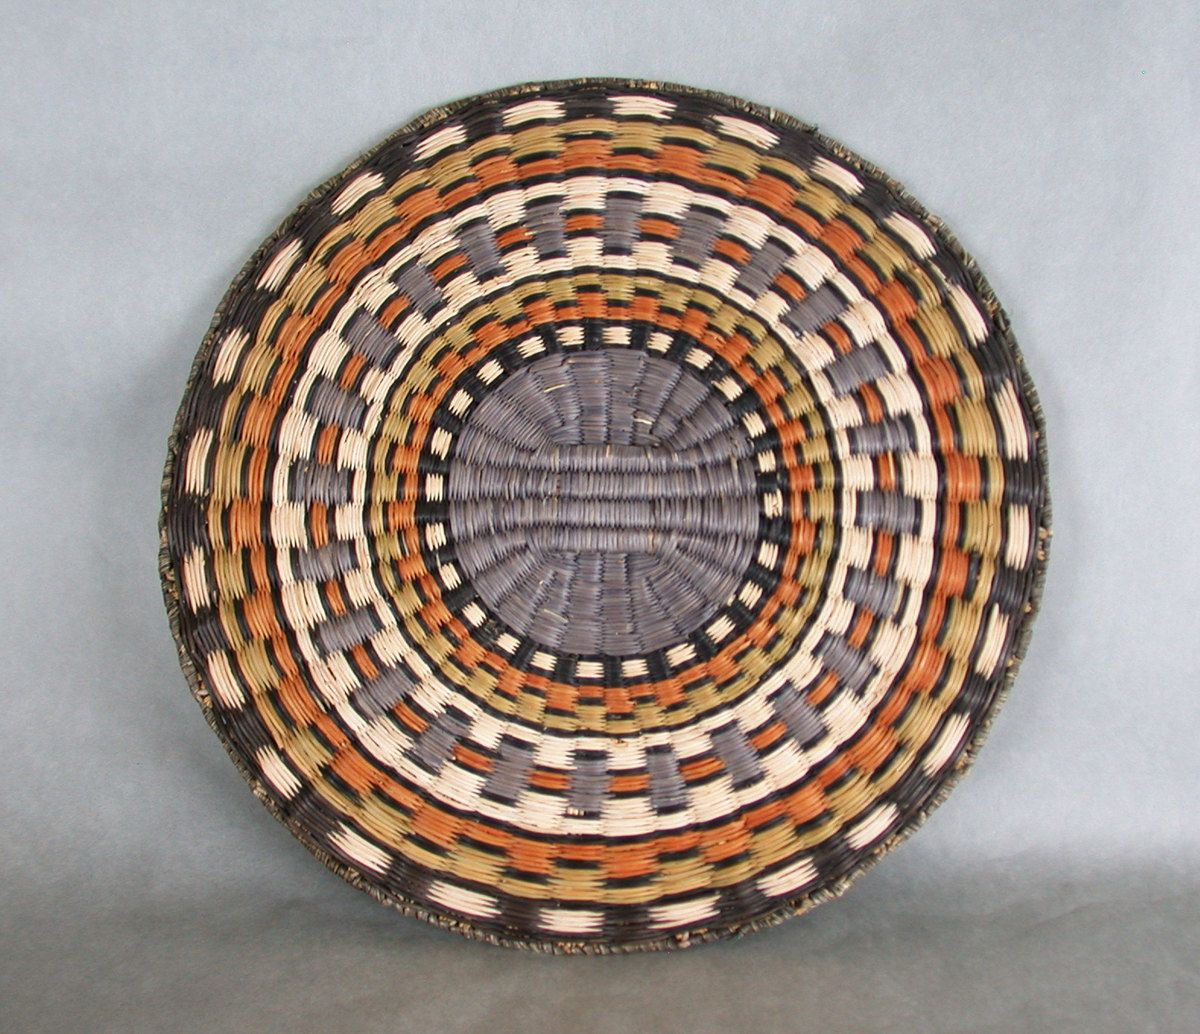 Very Finely Woven Old Hopi Third Mesa Wicker Basket